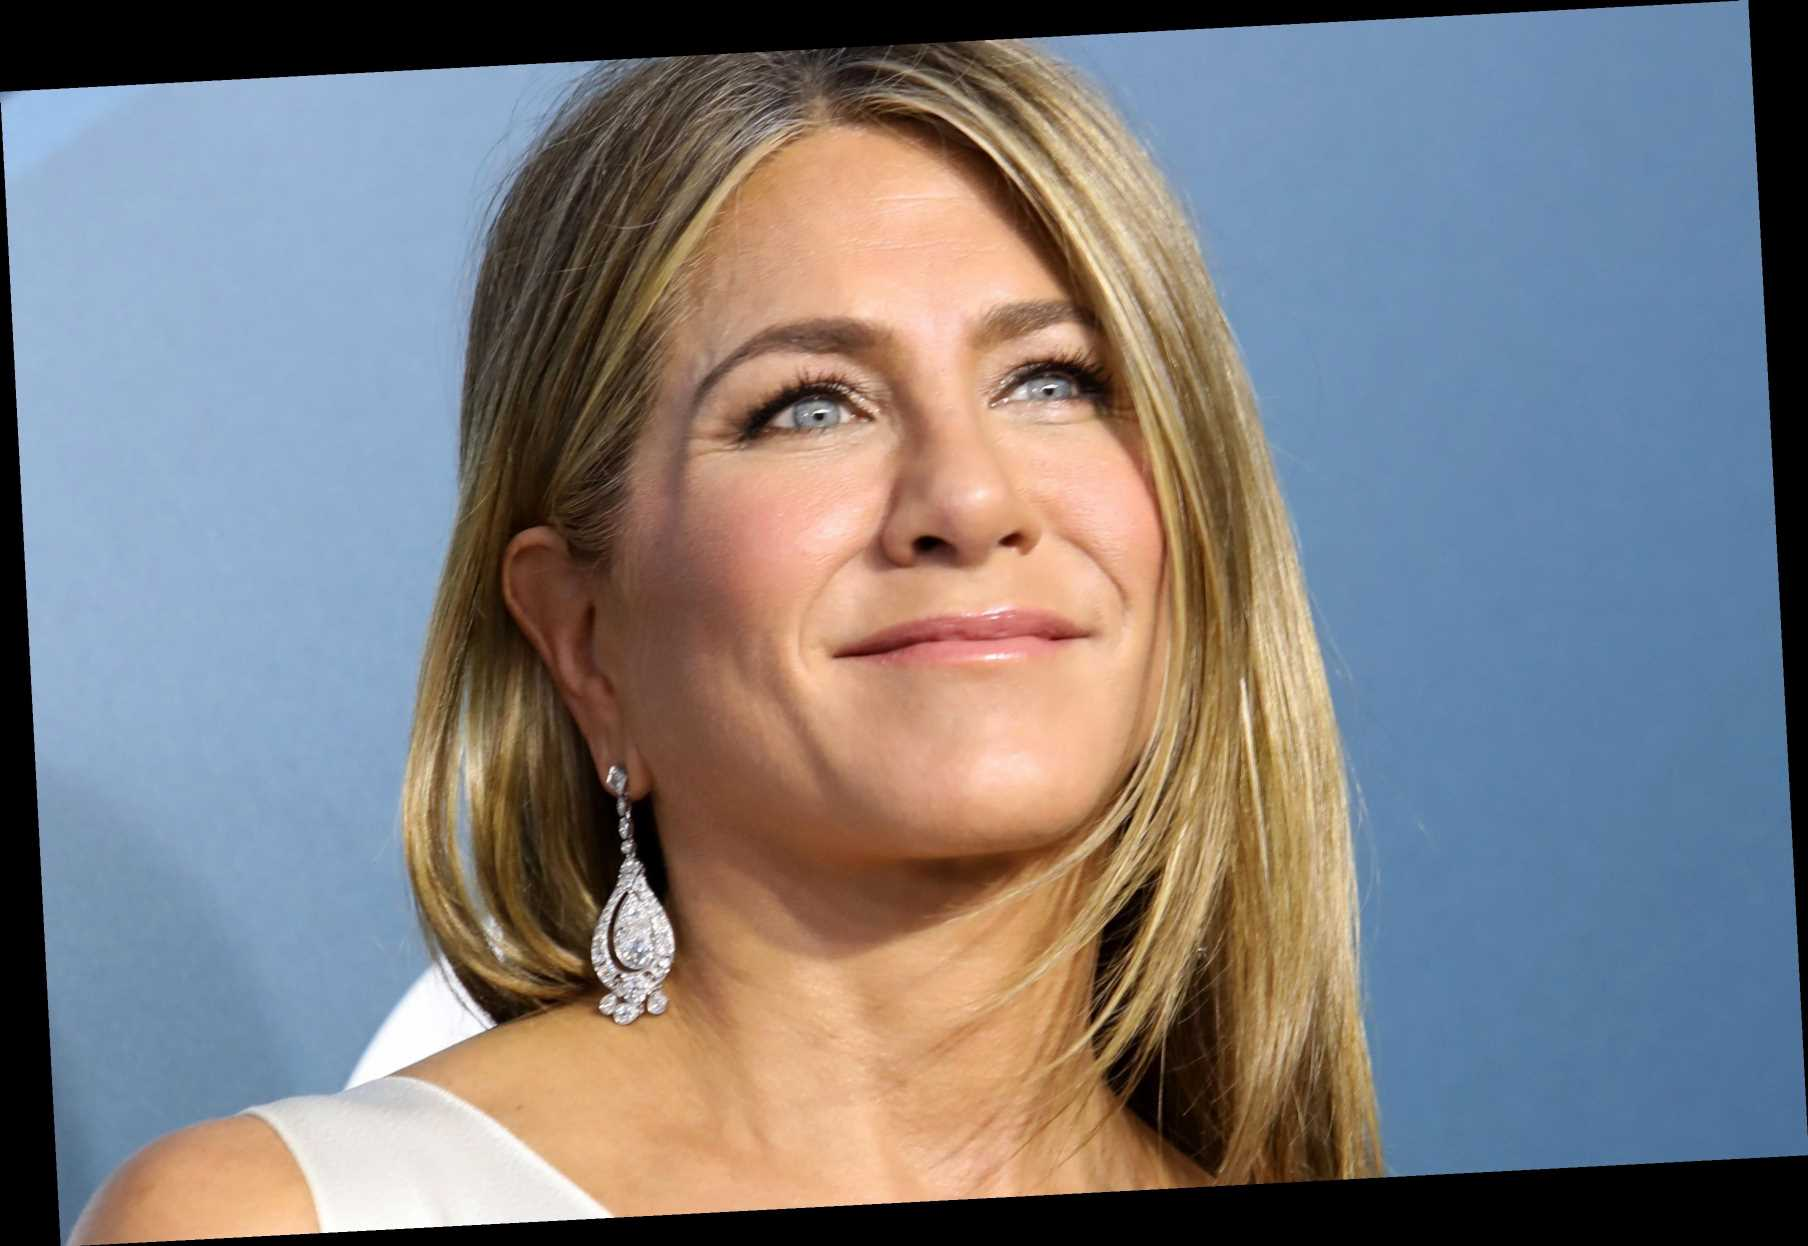 Who is Jennifer Aniston dating? Relationship history revealed from Justin Theroux to Brad Pitt – The Sun